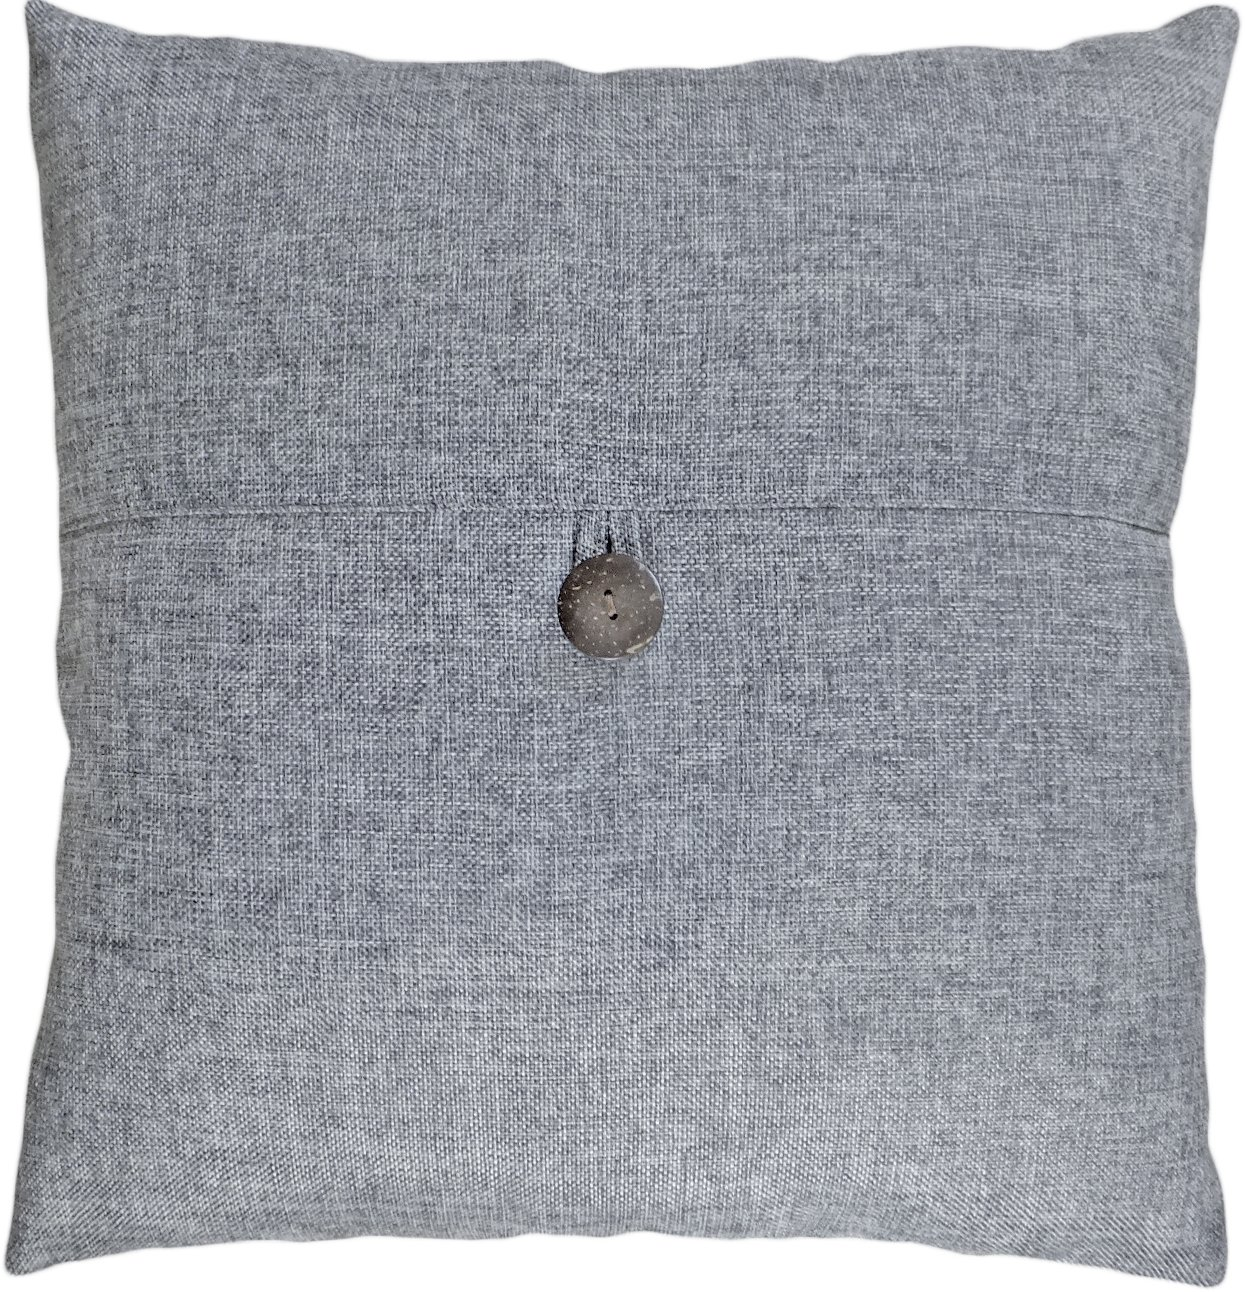 amazoncom decorative button grey throw pillow cover  home  - amazoncom decorative button grey throw pillow cover  home  kitchen